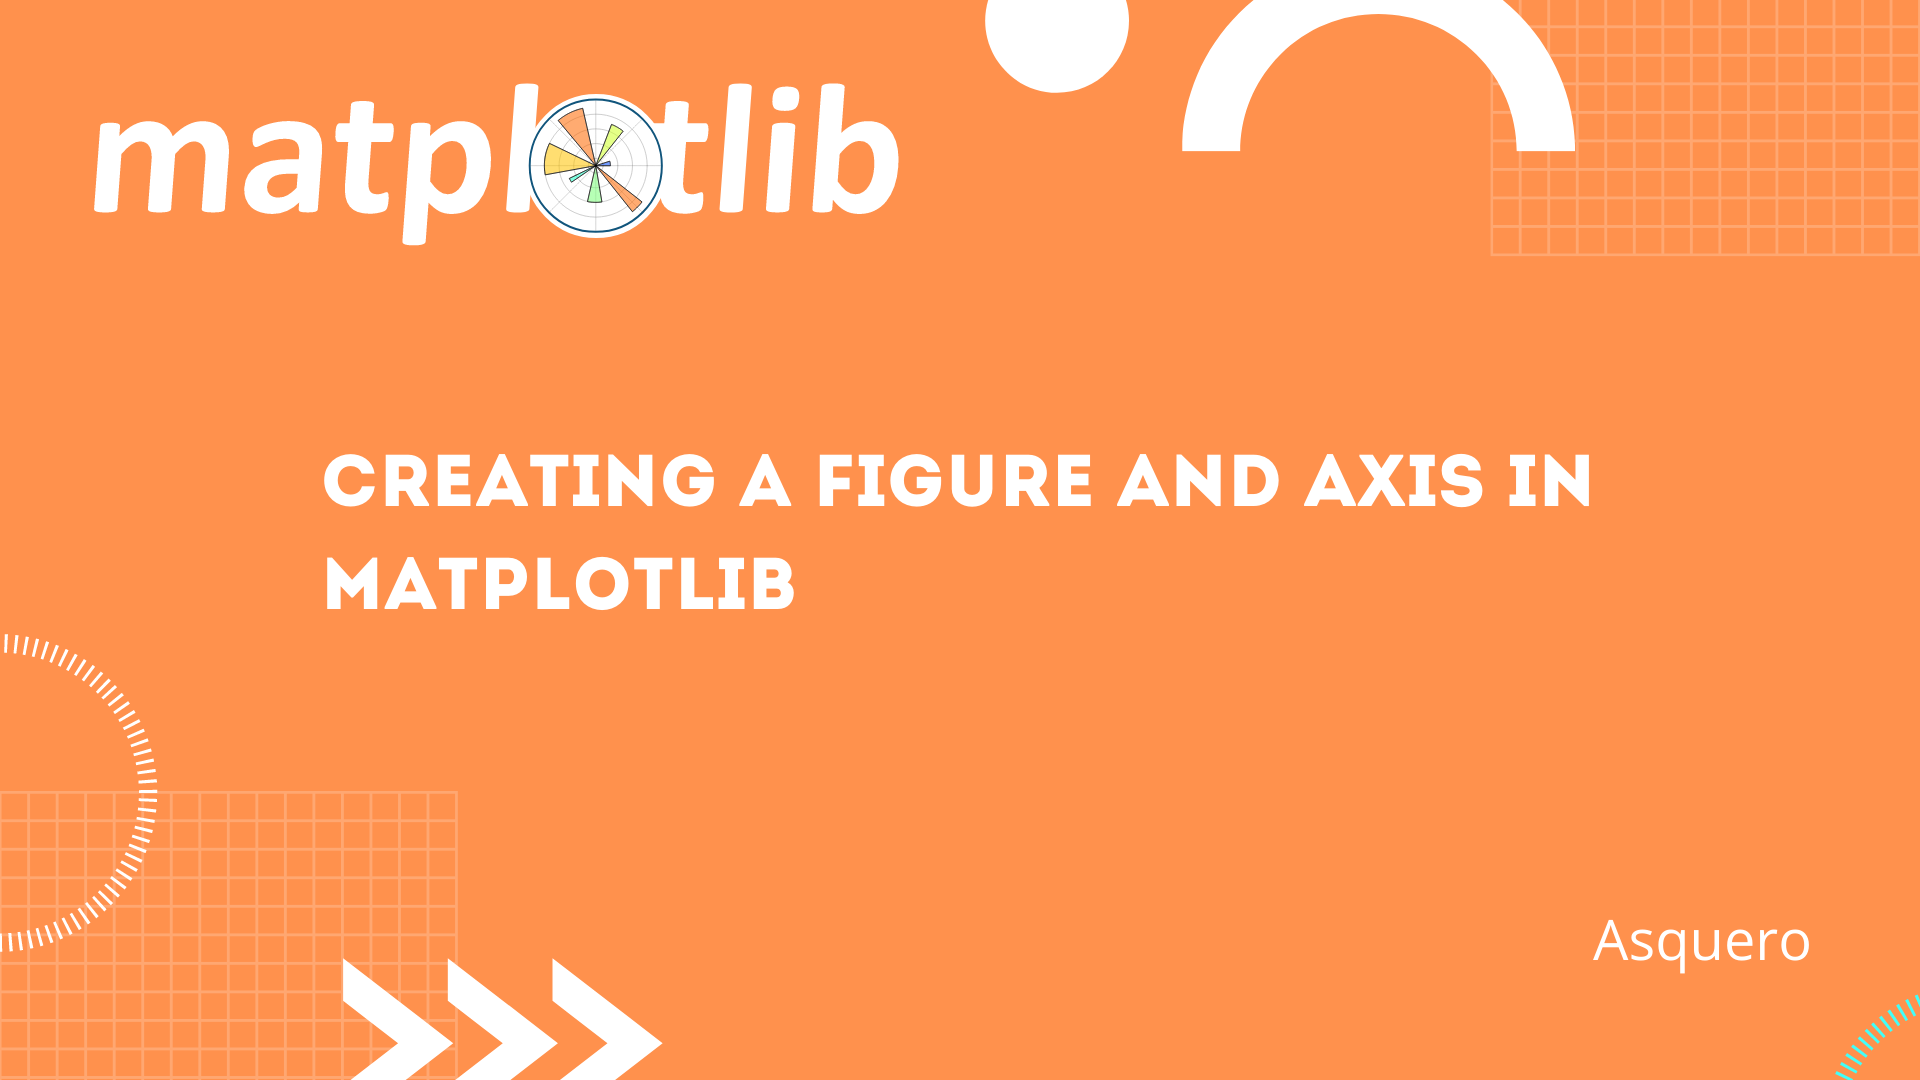 Creating a figure and axis in Matplotlib